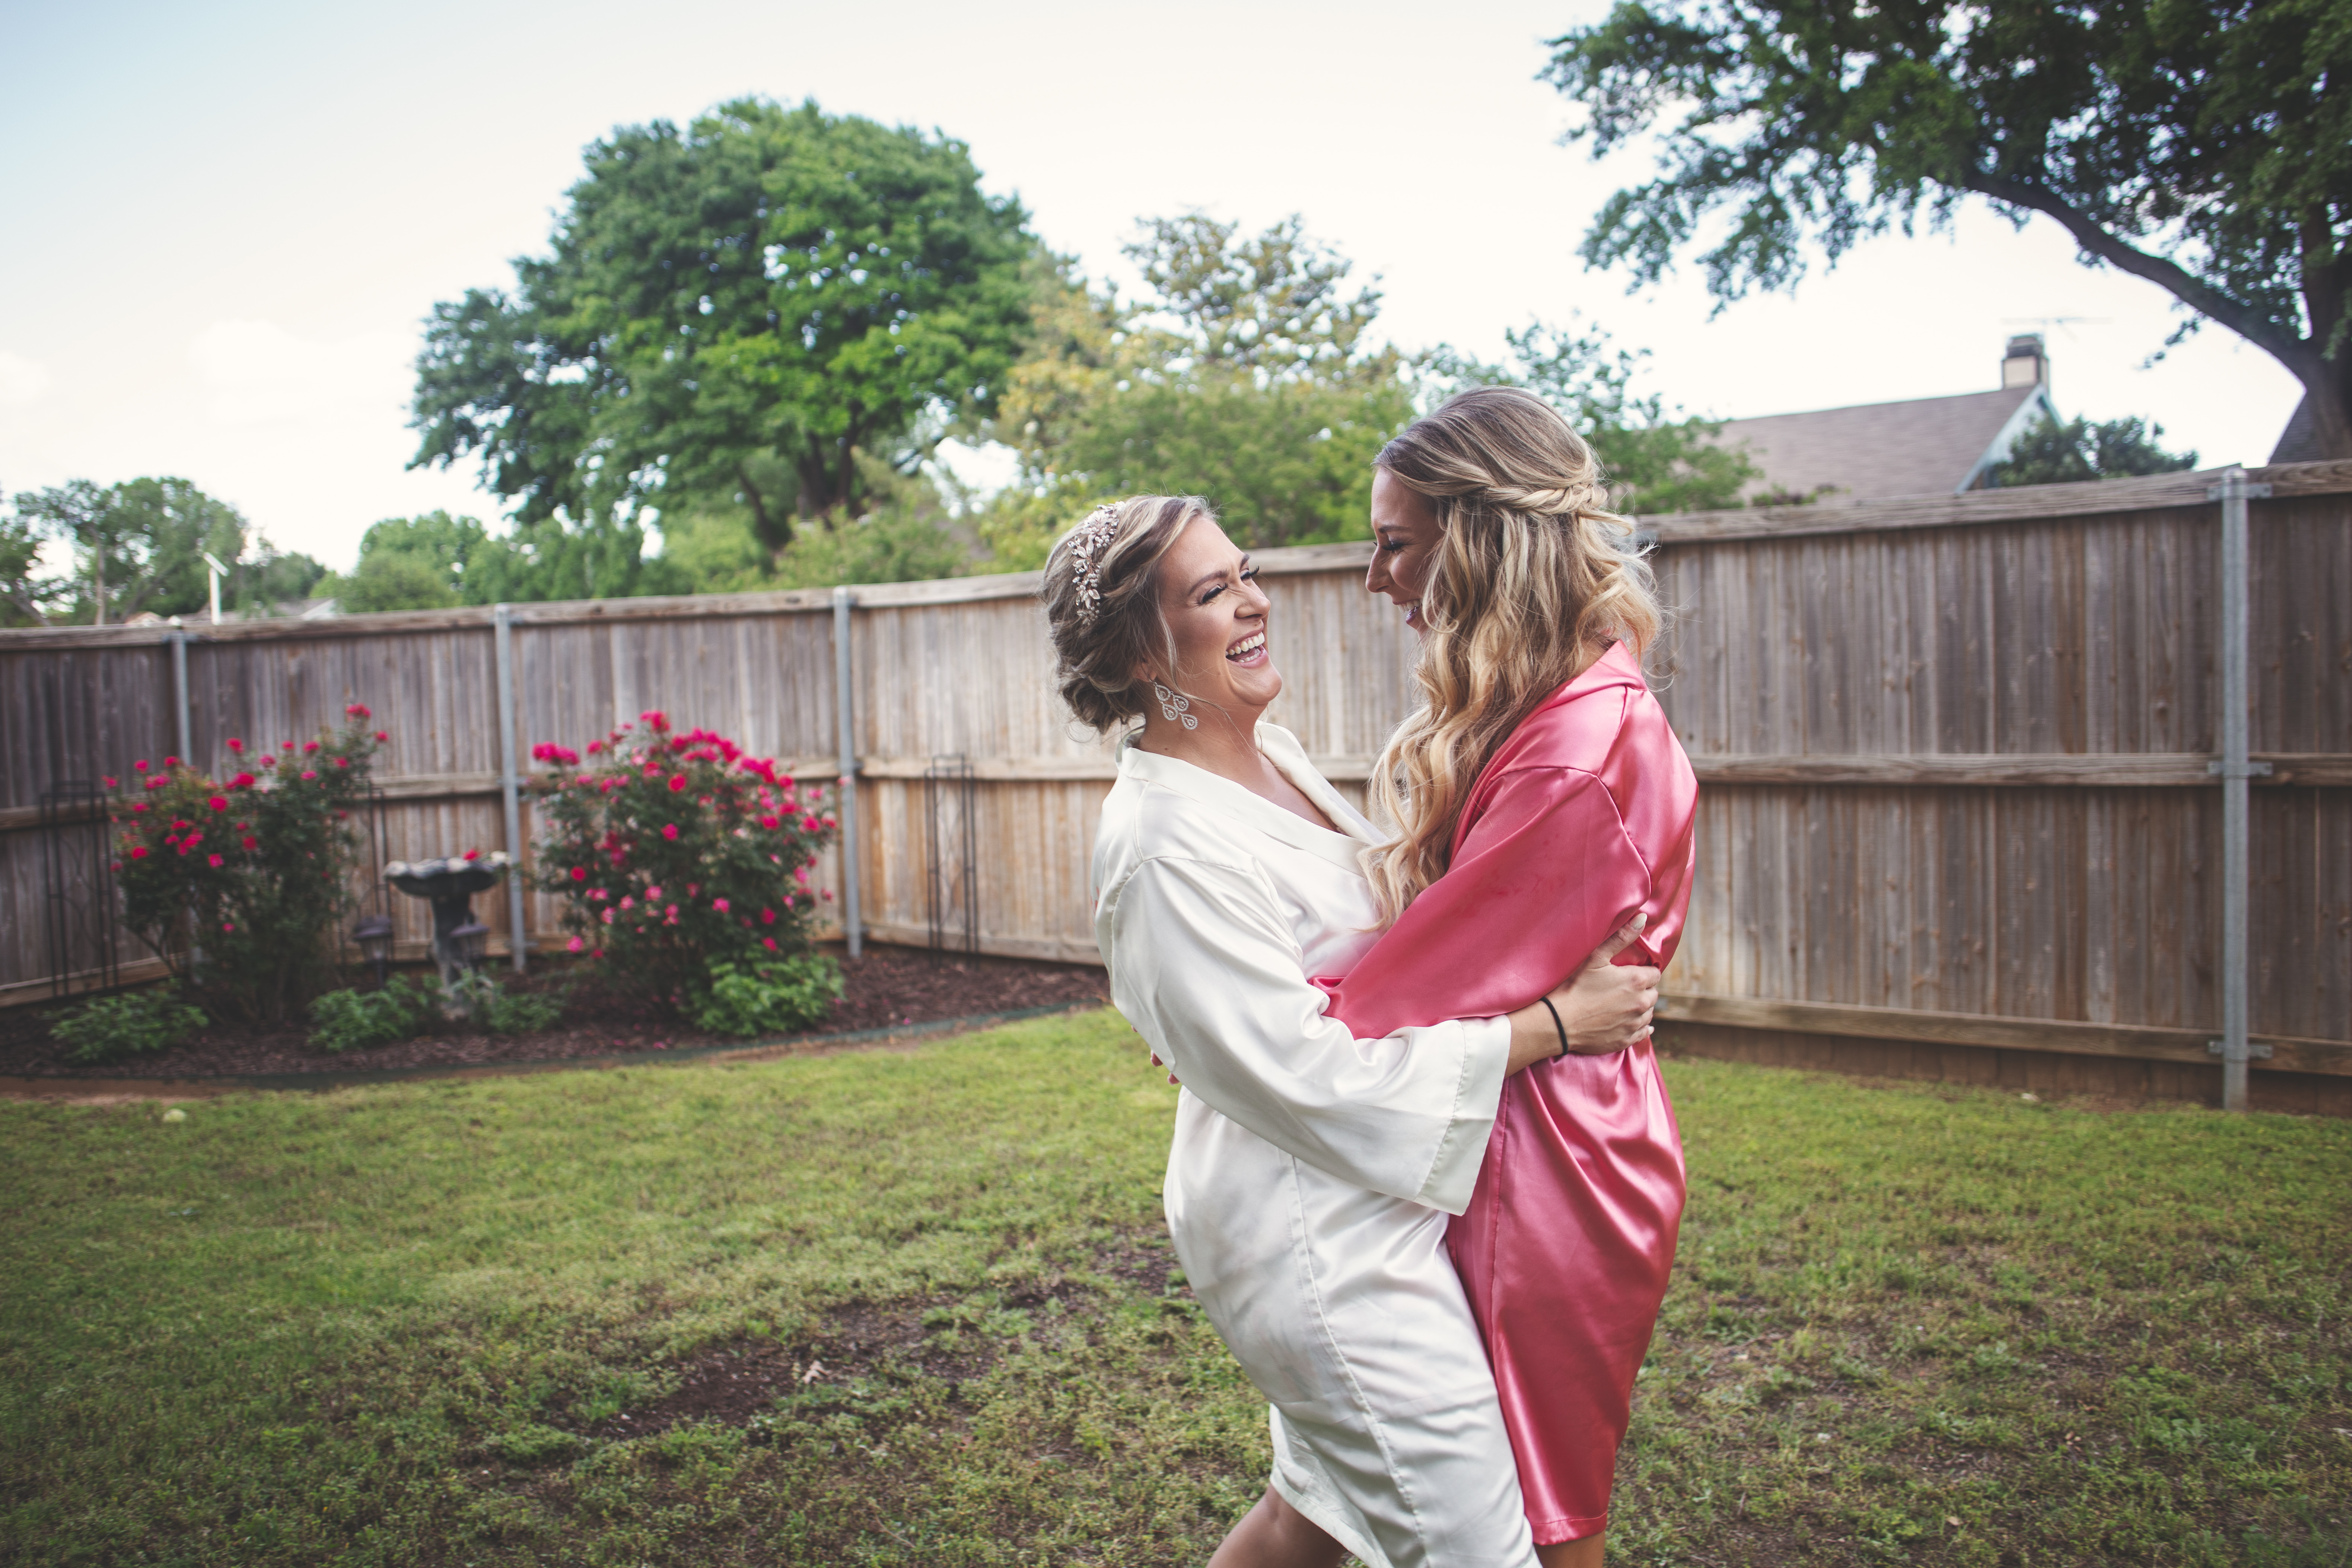 Maid of honor and bride's photos | Flower Mound Wedding Photographer - Skys the Limit Production